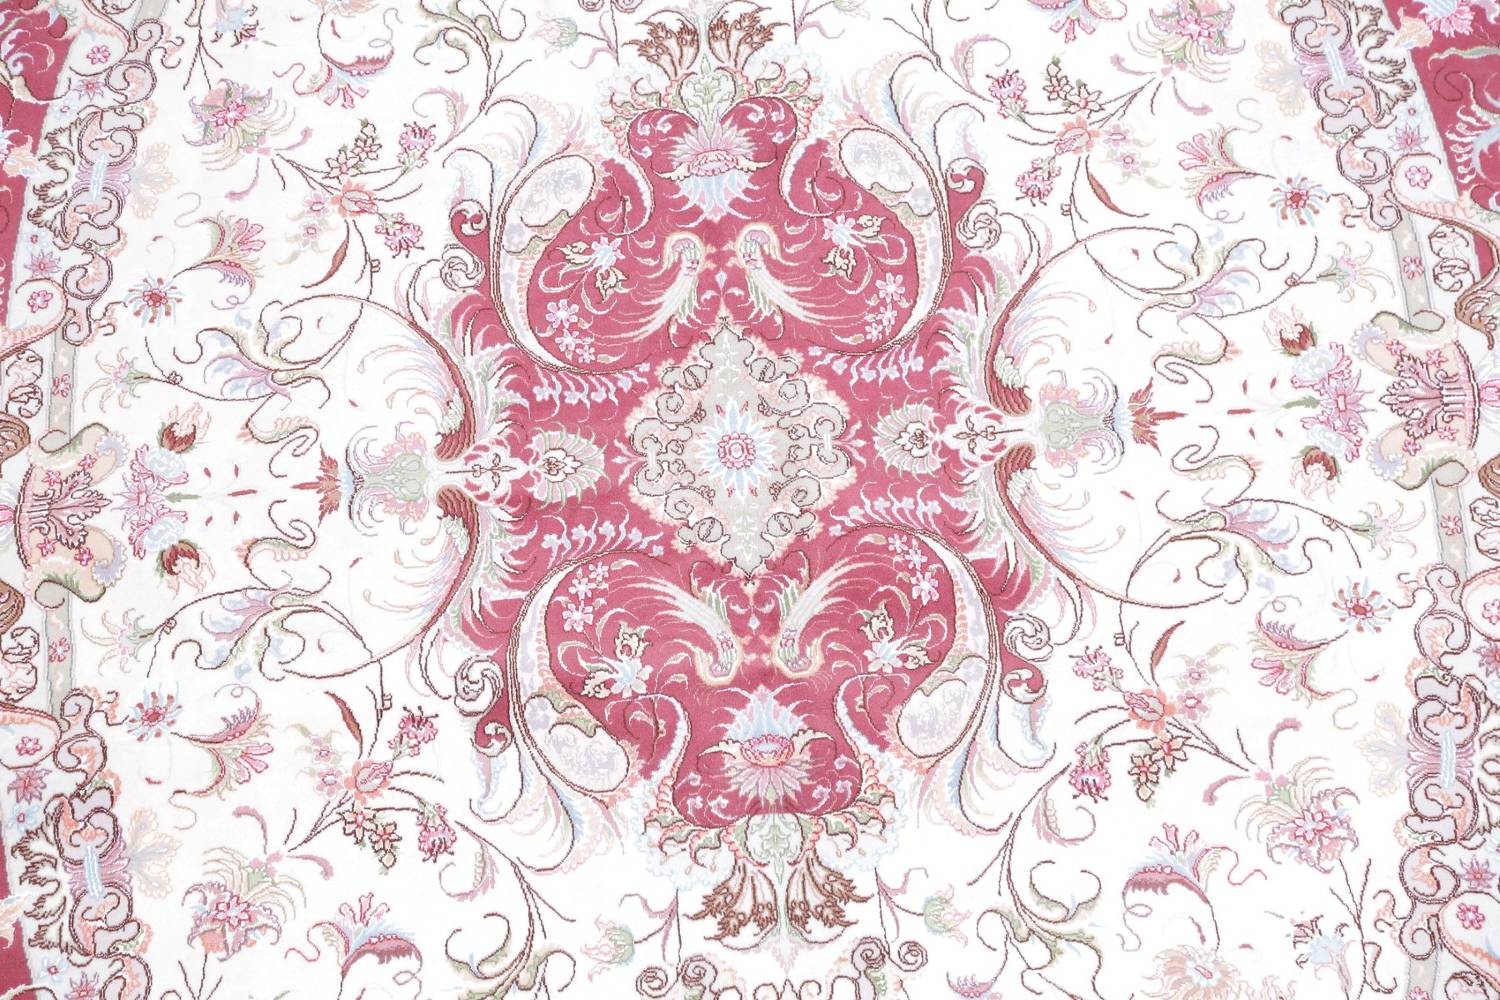 Vegetable Dye Floral Ivory Tabriz Persian Hand-Knotted Area Rug 7x10 image 4